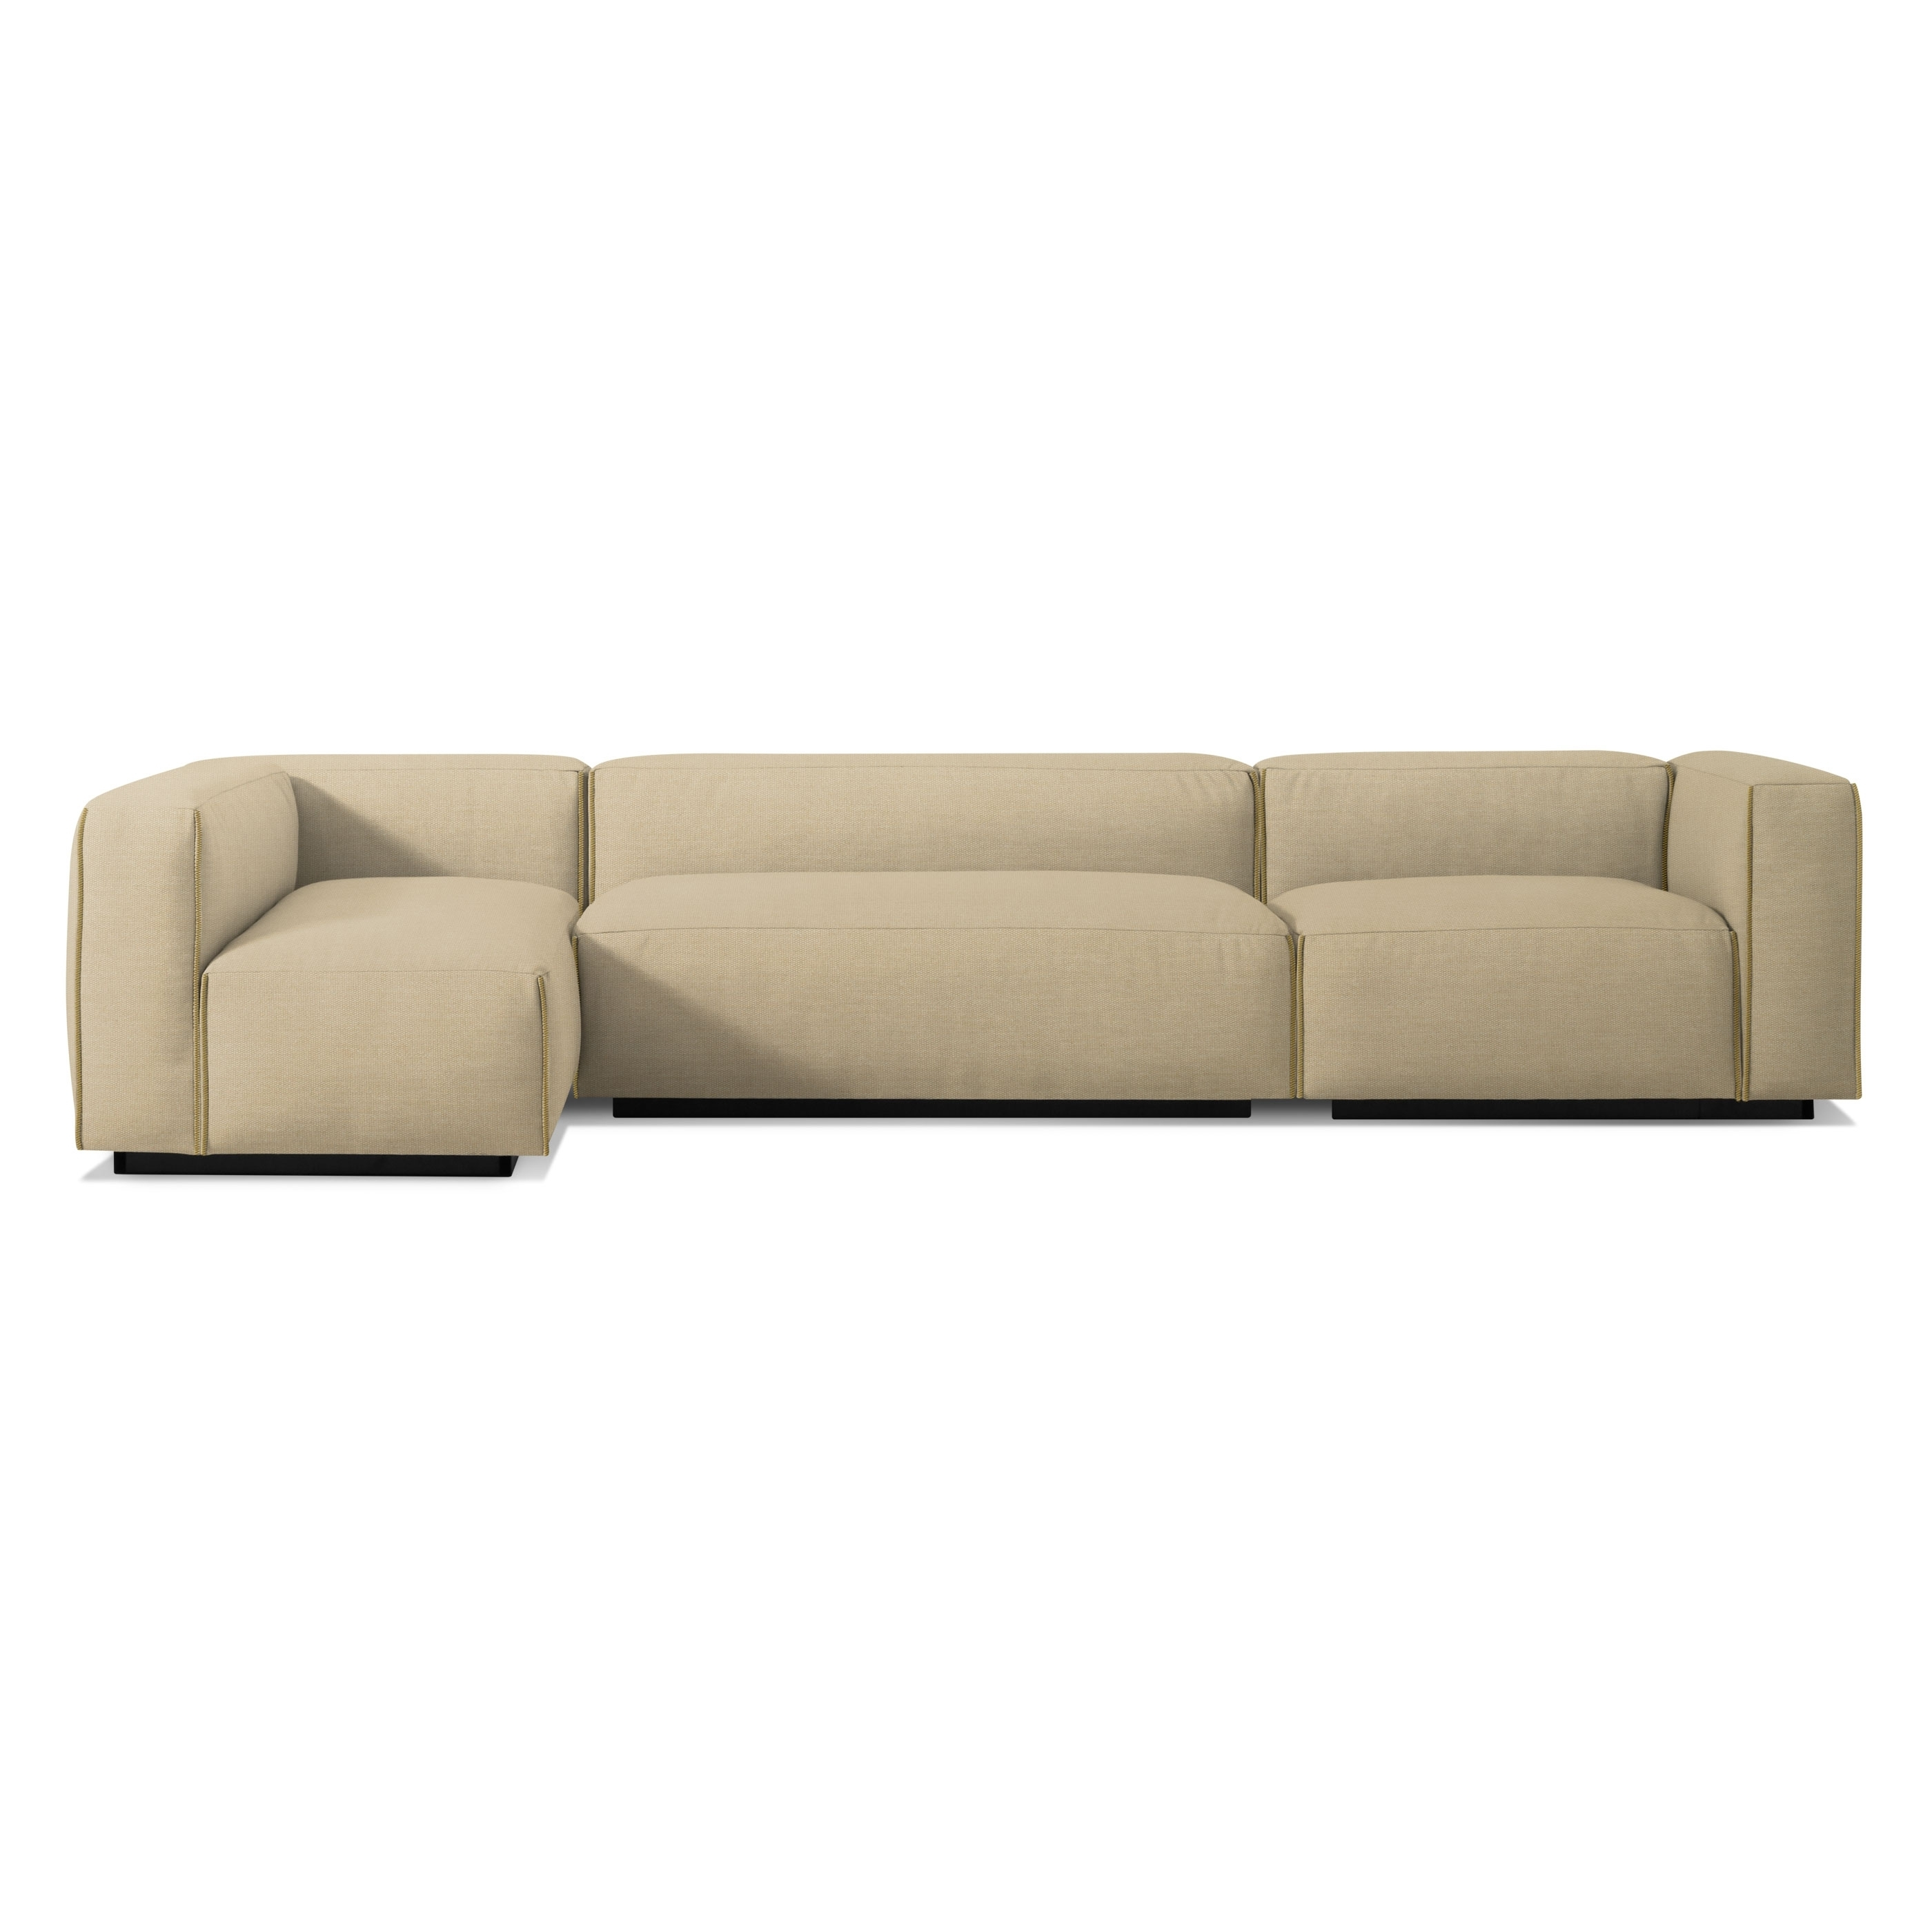 Most Up To Date Nova Scotia Sectional Sofas With Regard To Cleon Medium+ Sectional Sofa – Modern Sofas And Sectionals (View 10 of 15)